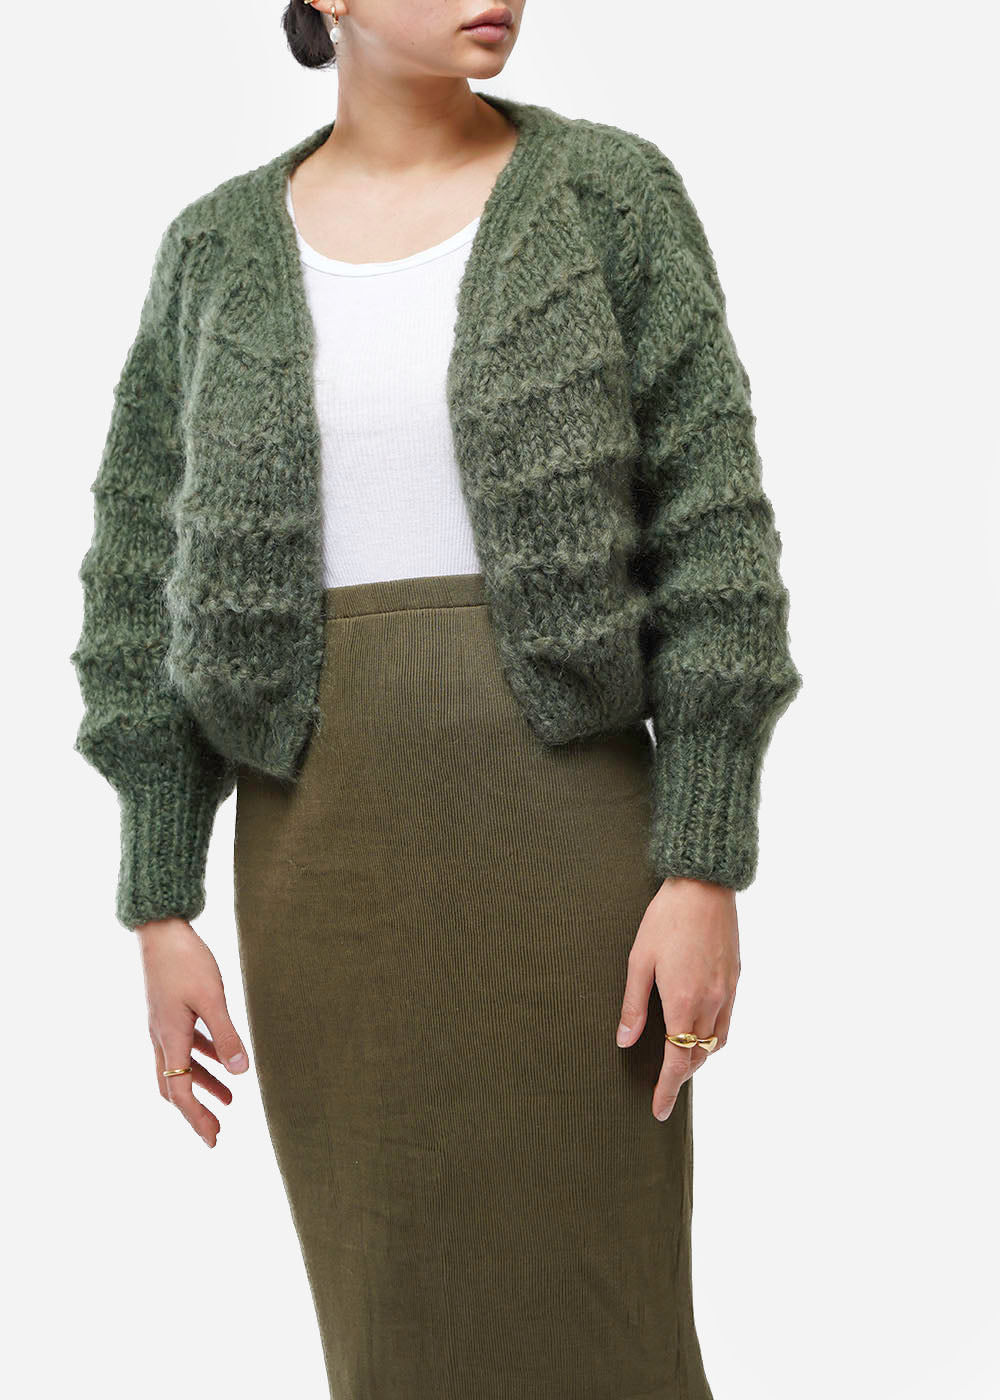 Frisson Knits Moss Becca Cardigan — Shop sustainable fashion and slow fashion at New Classics Studios